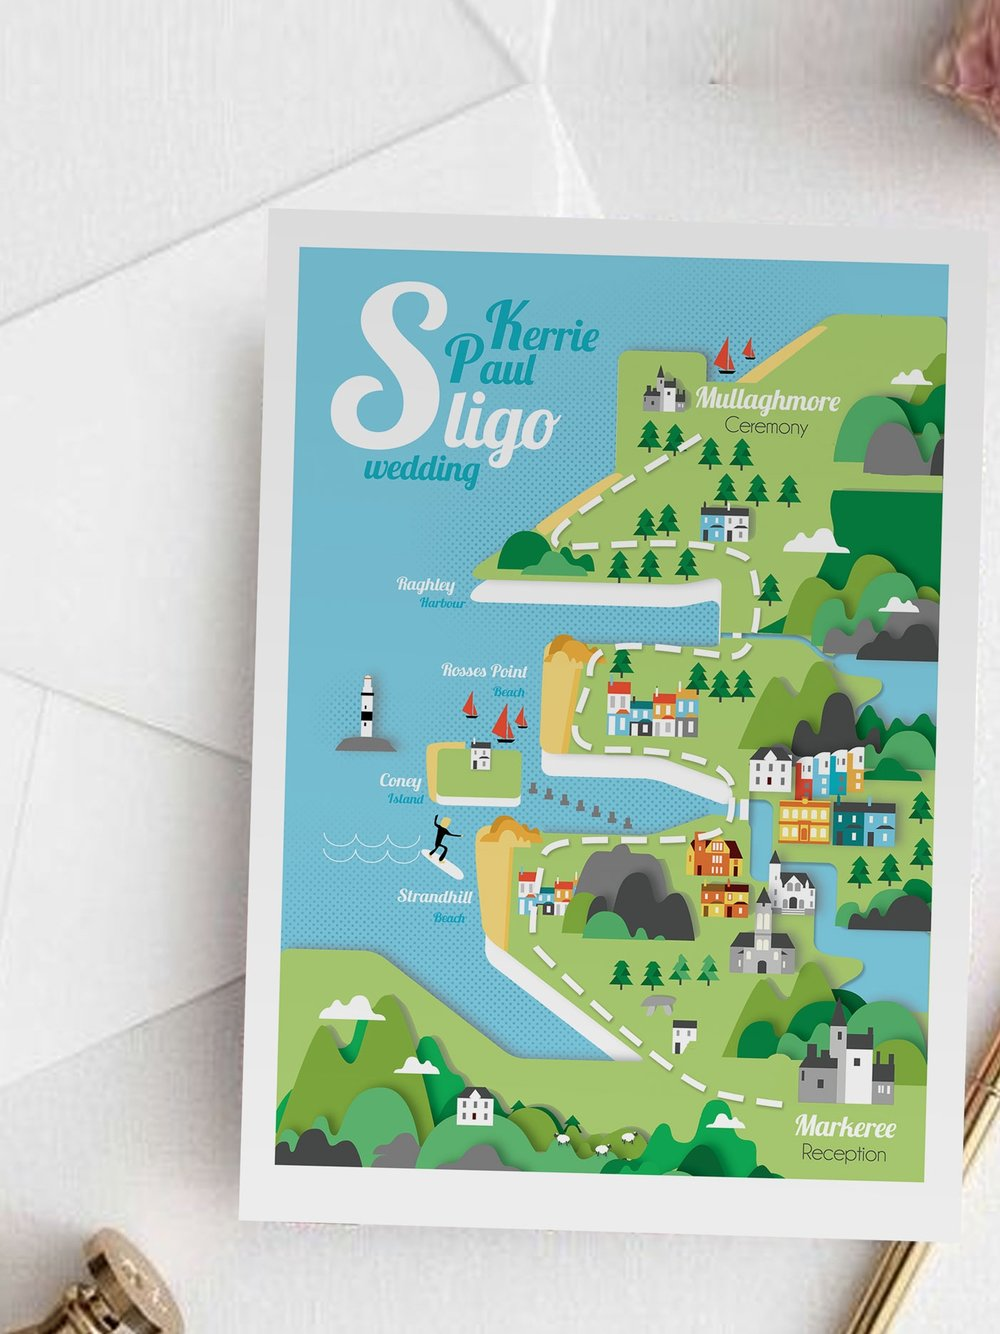 Sligo map wedding invite.jpg